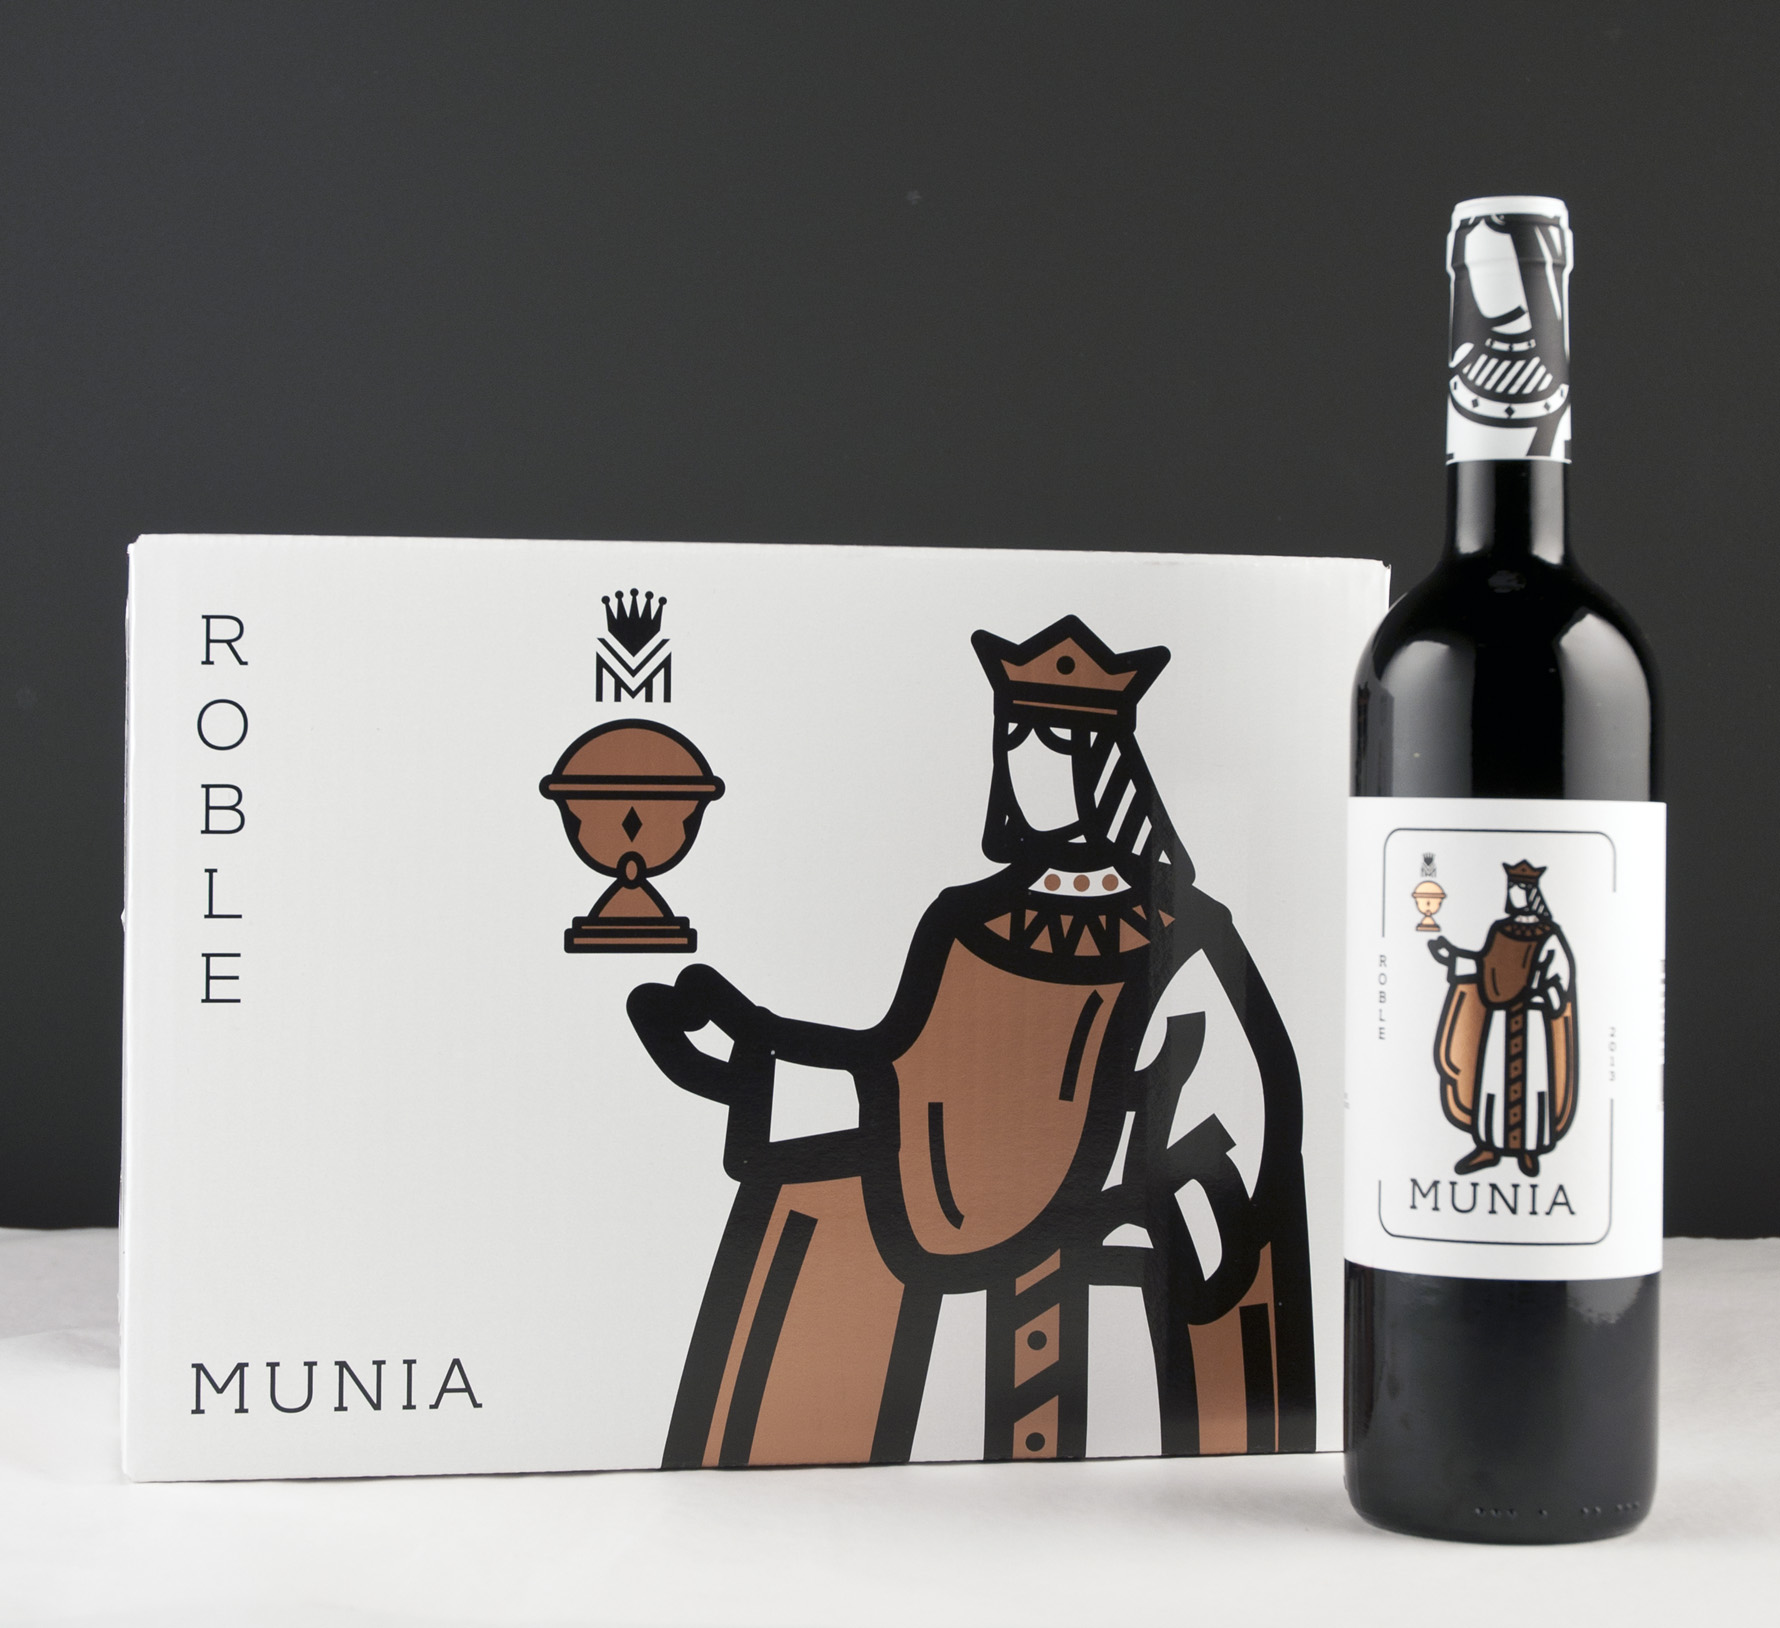 munia_roble+case